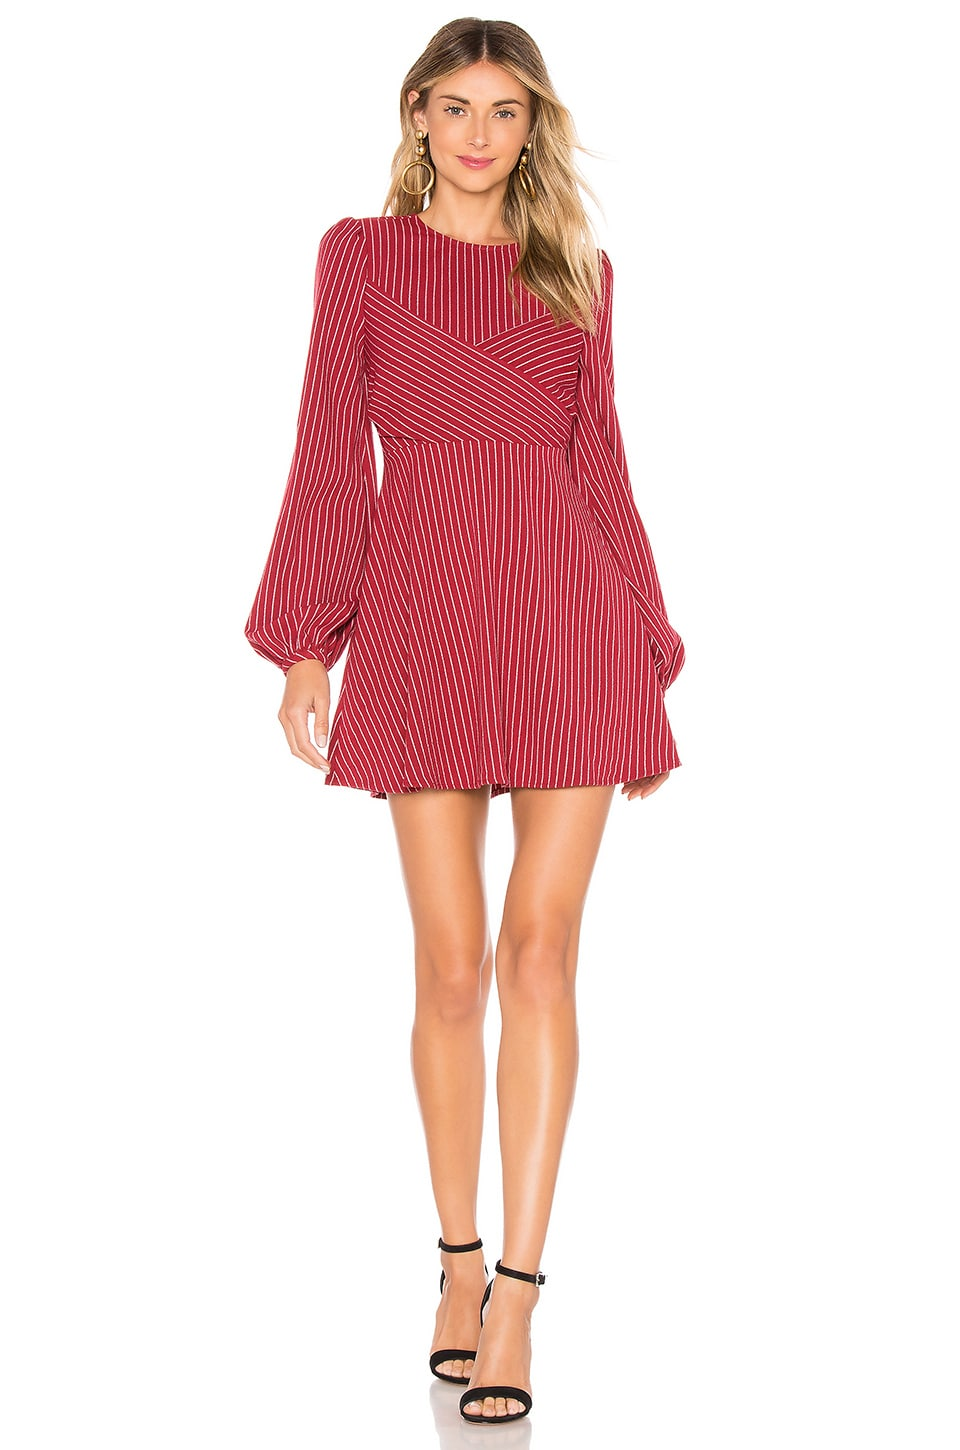 Tularosa Lina Dress in Ruby Red